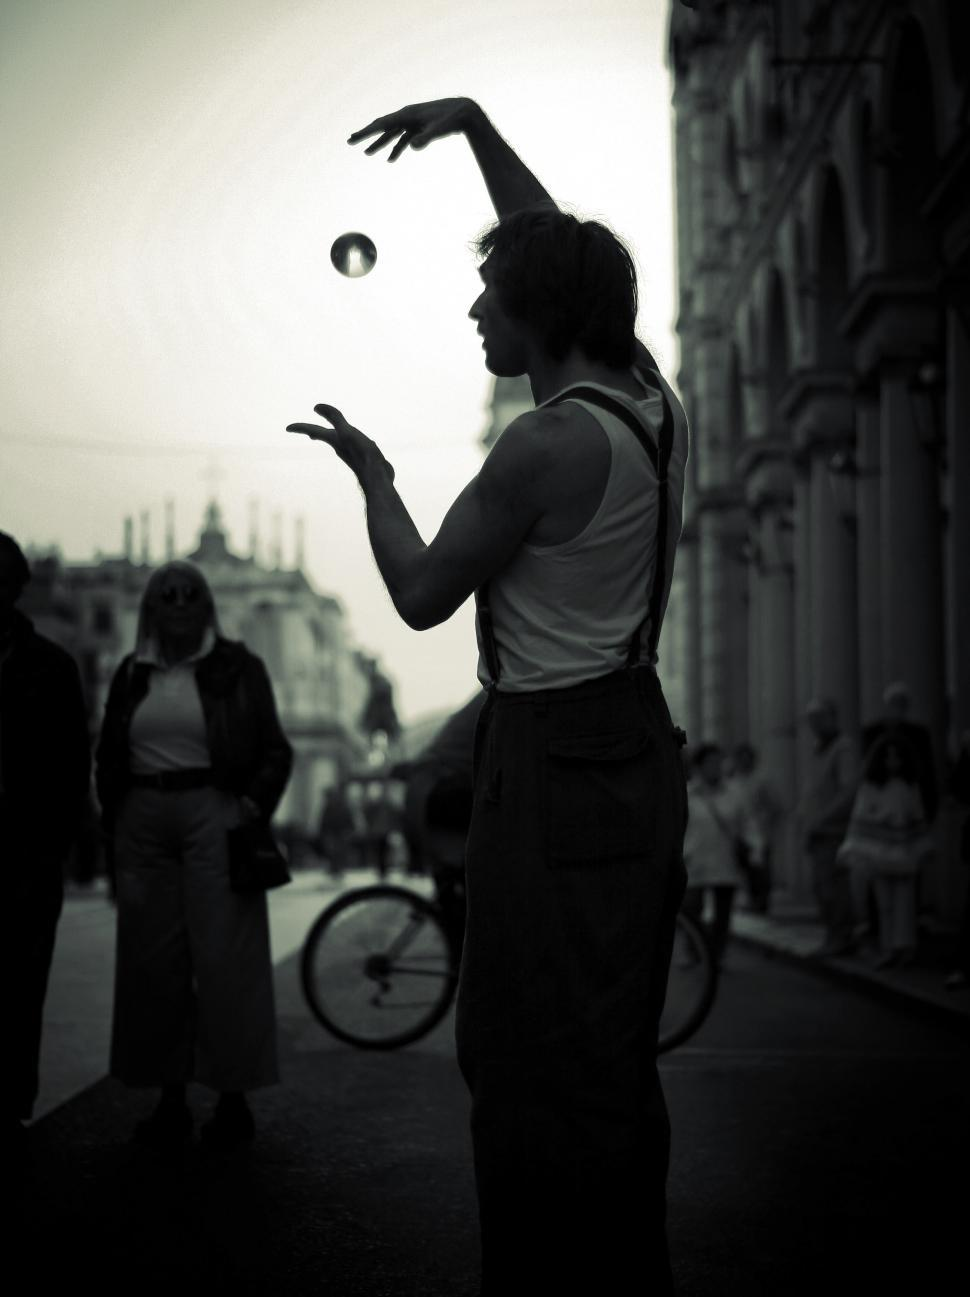 Download Free Stock Photo of Street magician